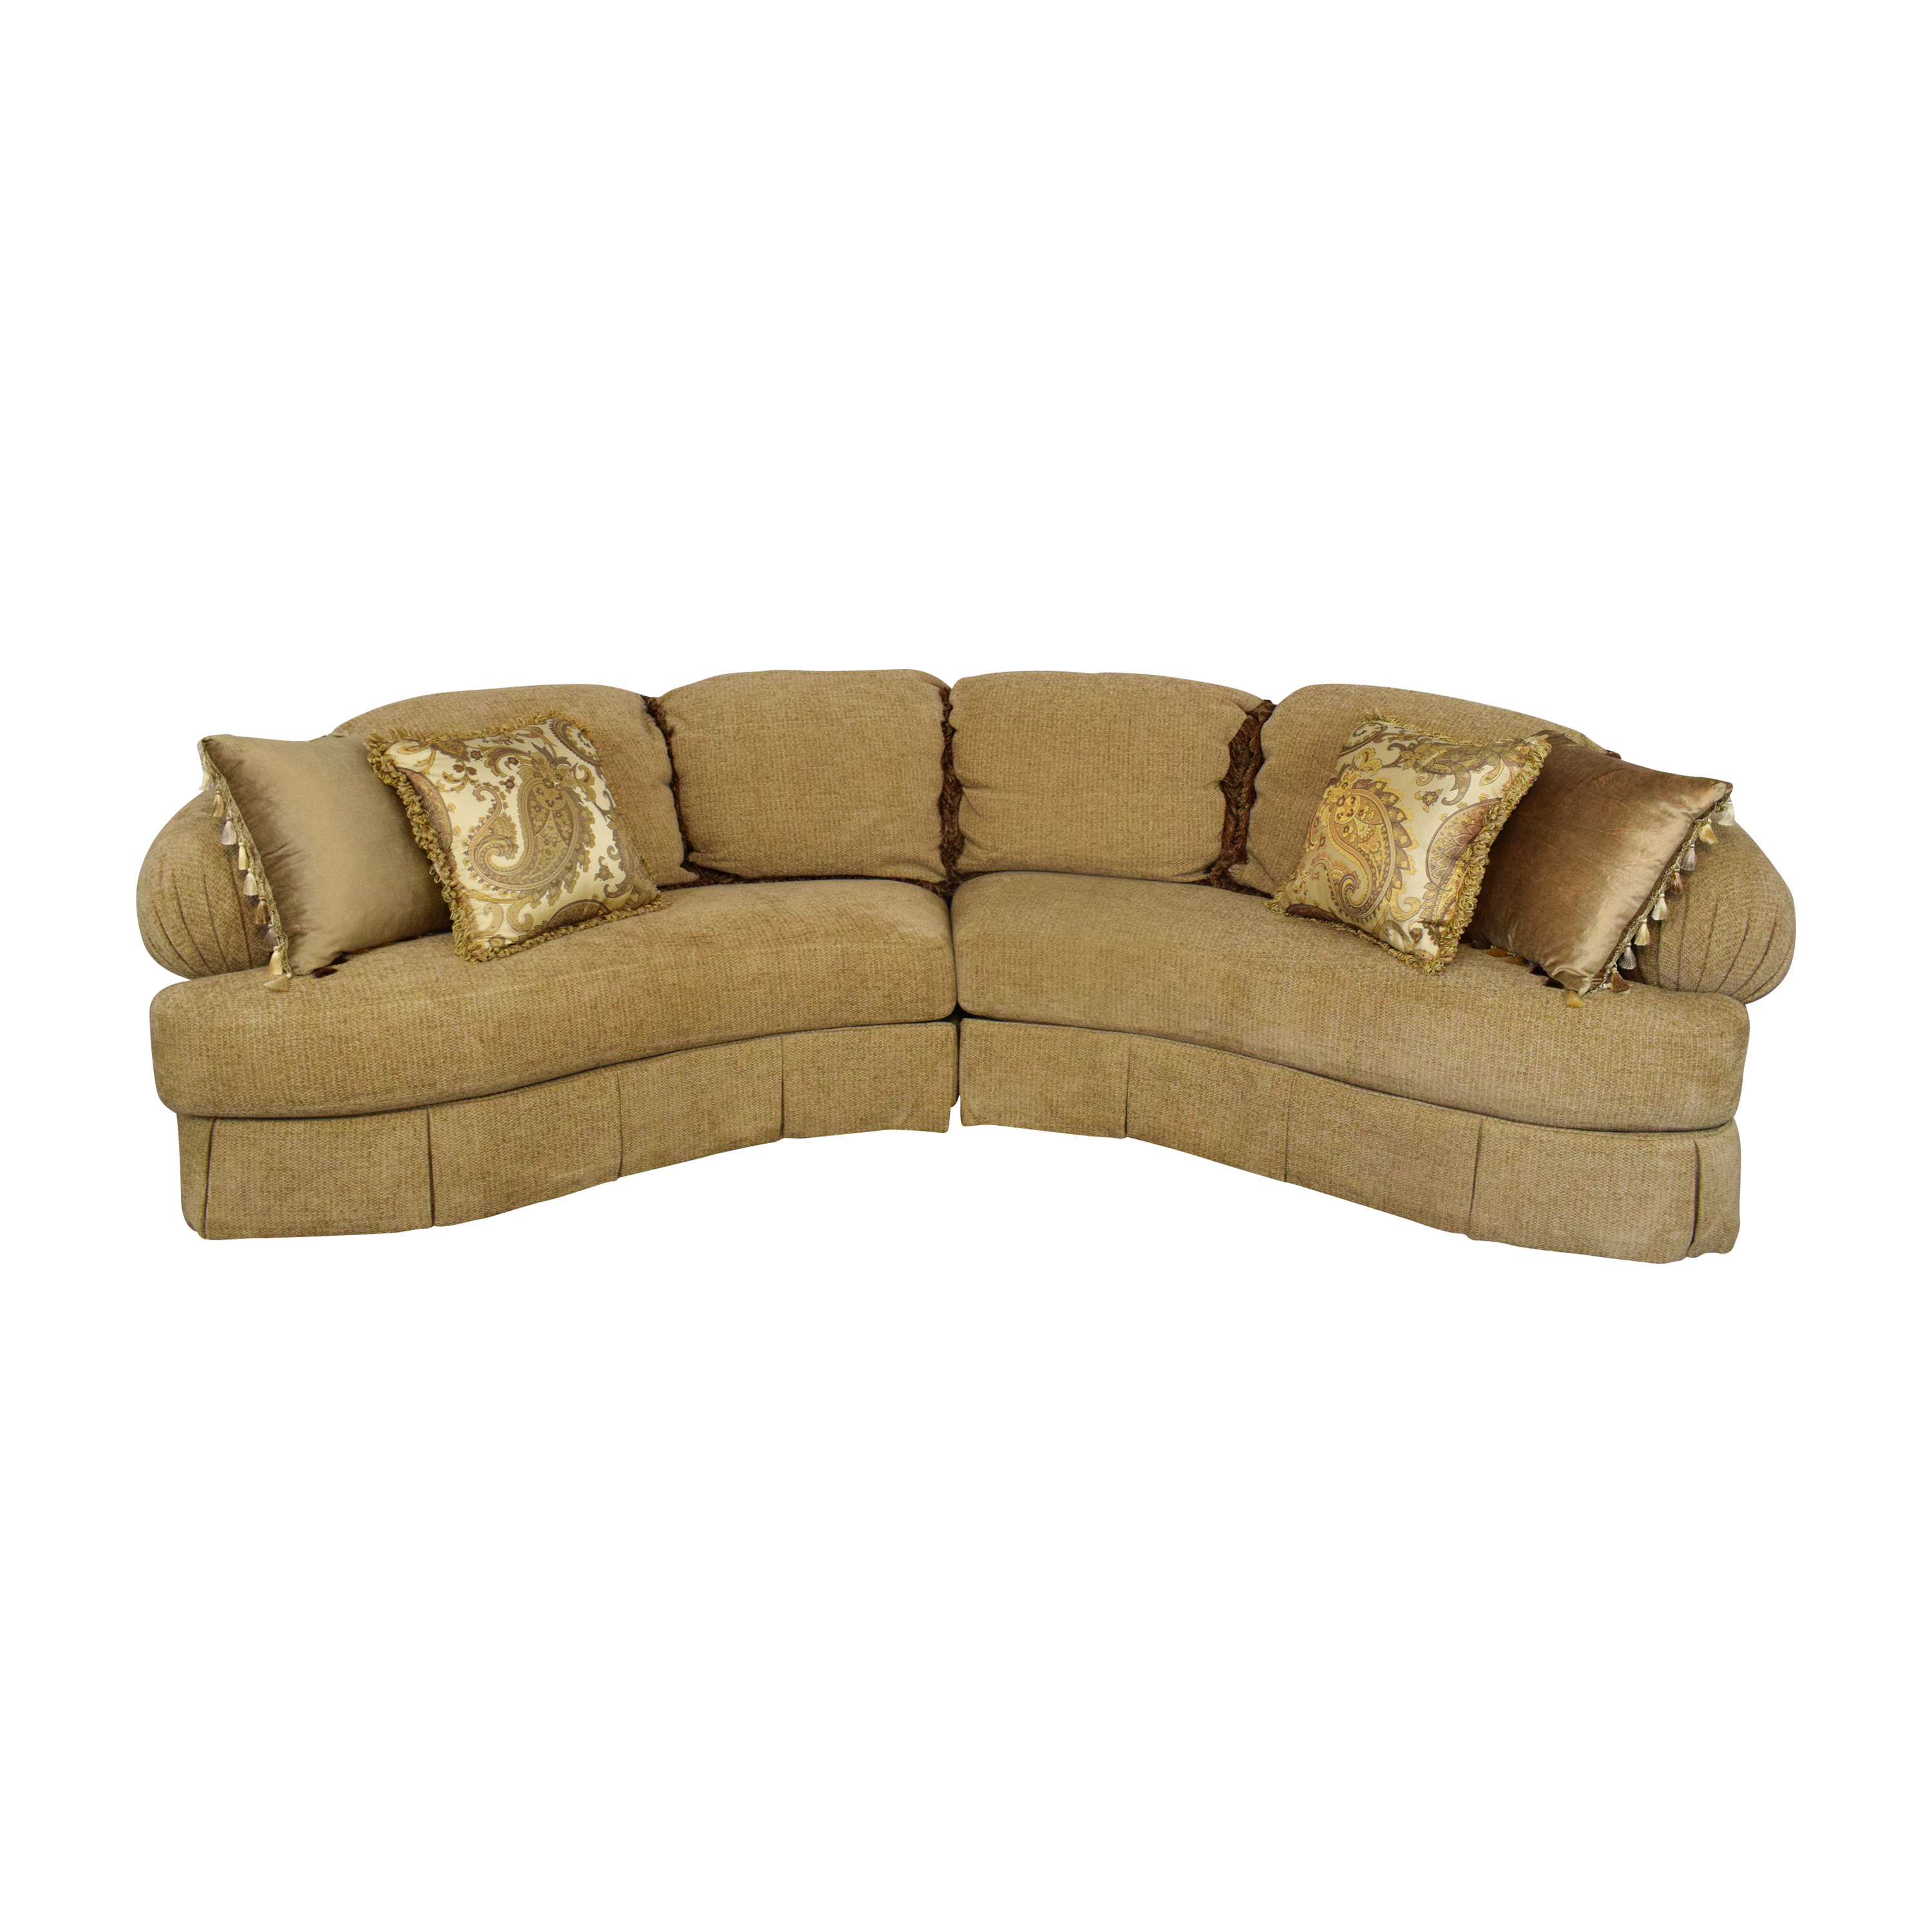 Ferguson Copeland Ferguson Copeland Curved Sectional Sofa Sectionals